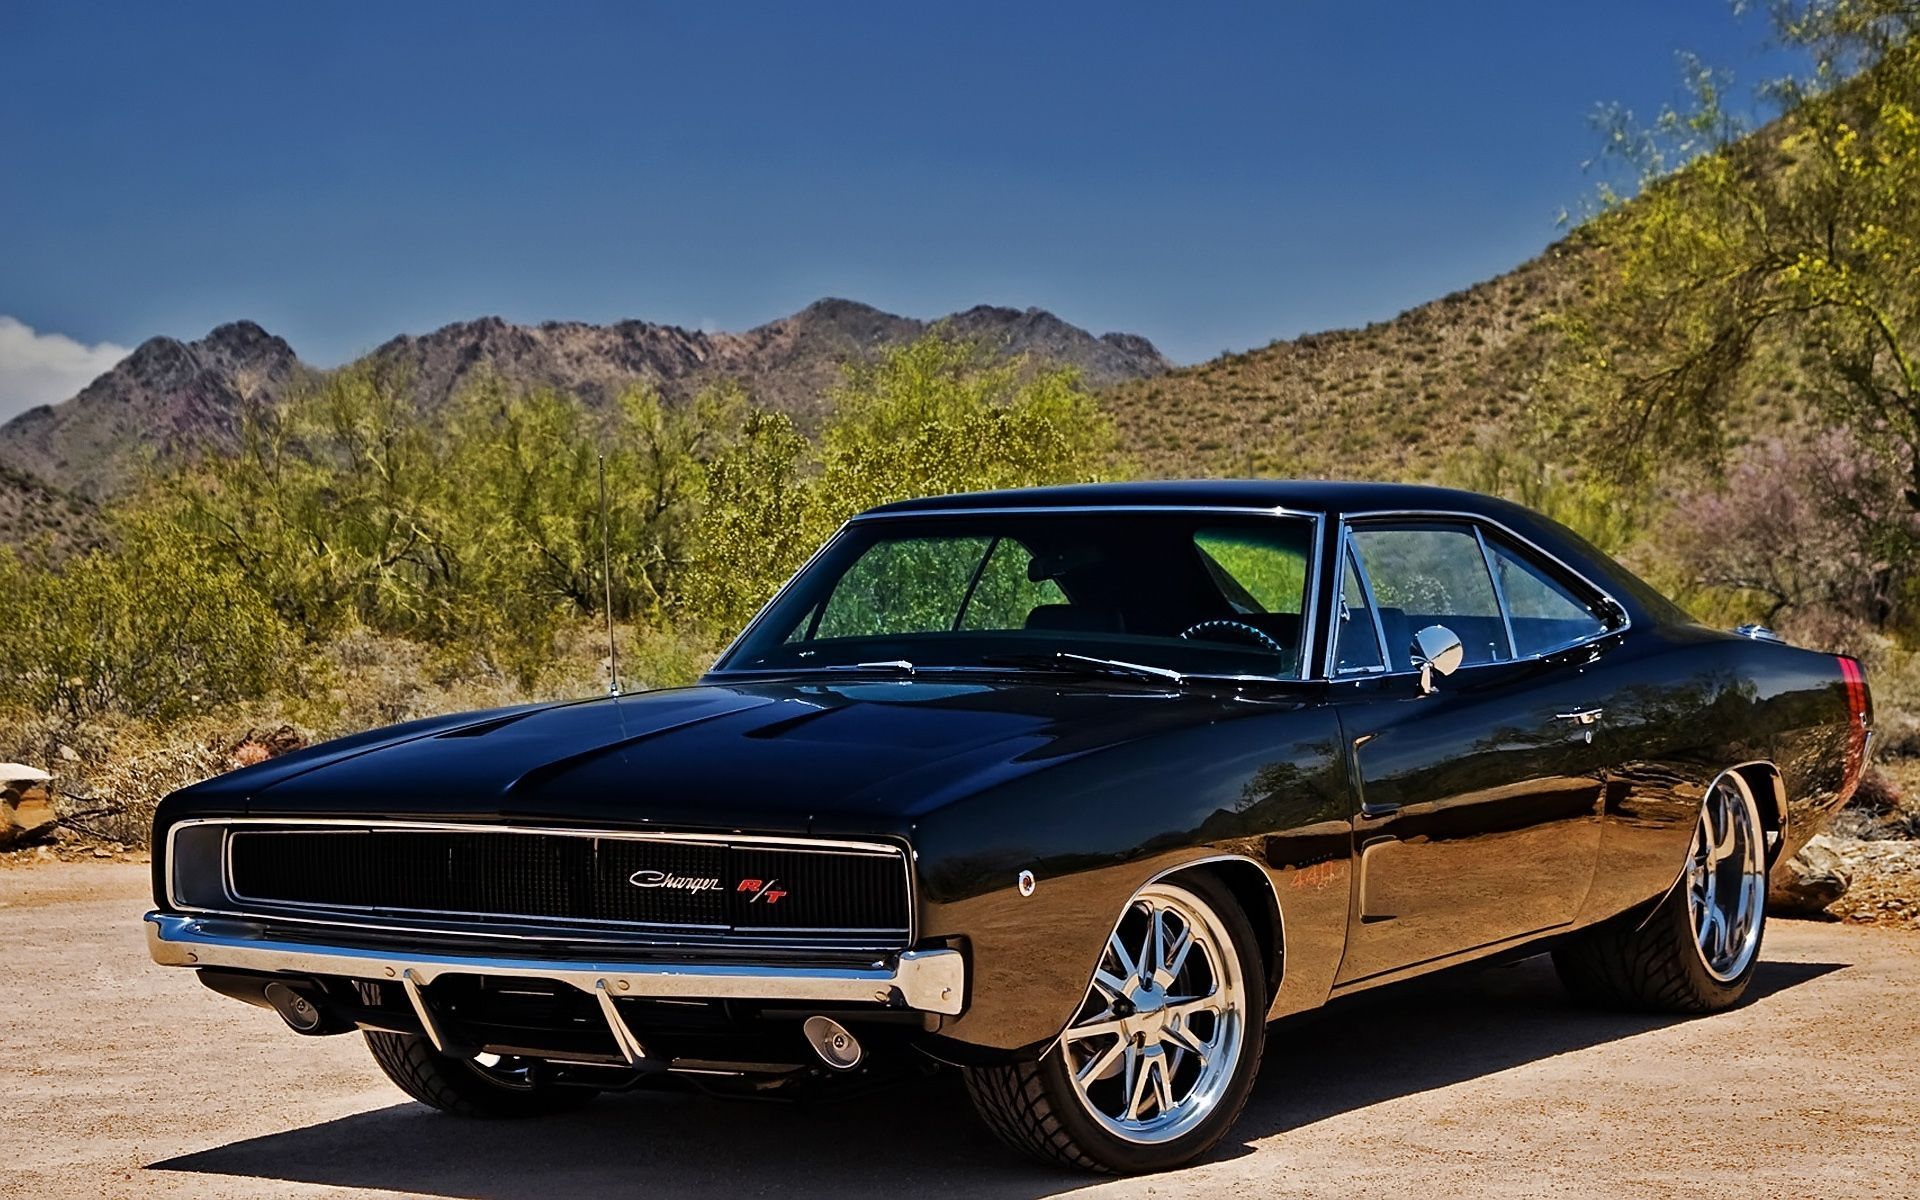 1968 dodge charger rt 1968 dodge charger r t [ 1920 x 1200 Pixel ]